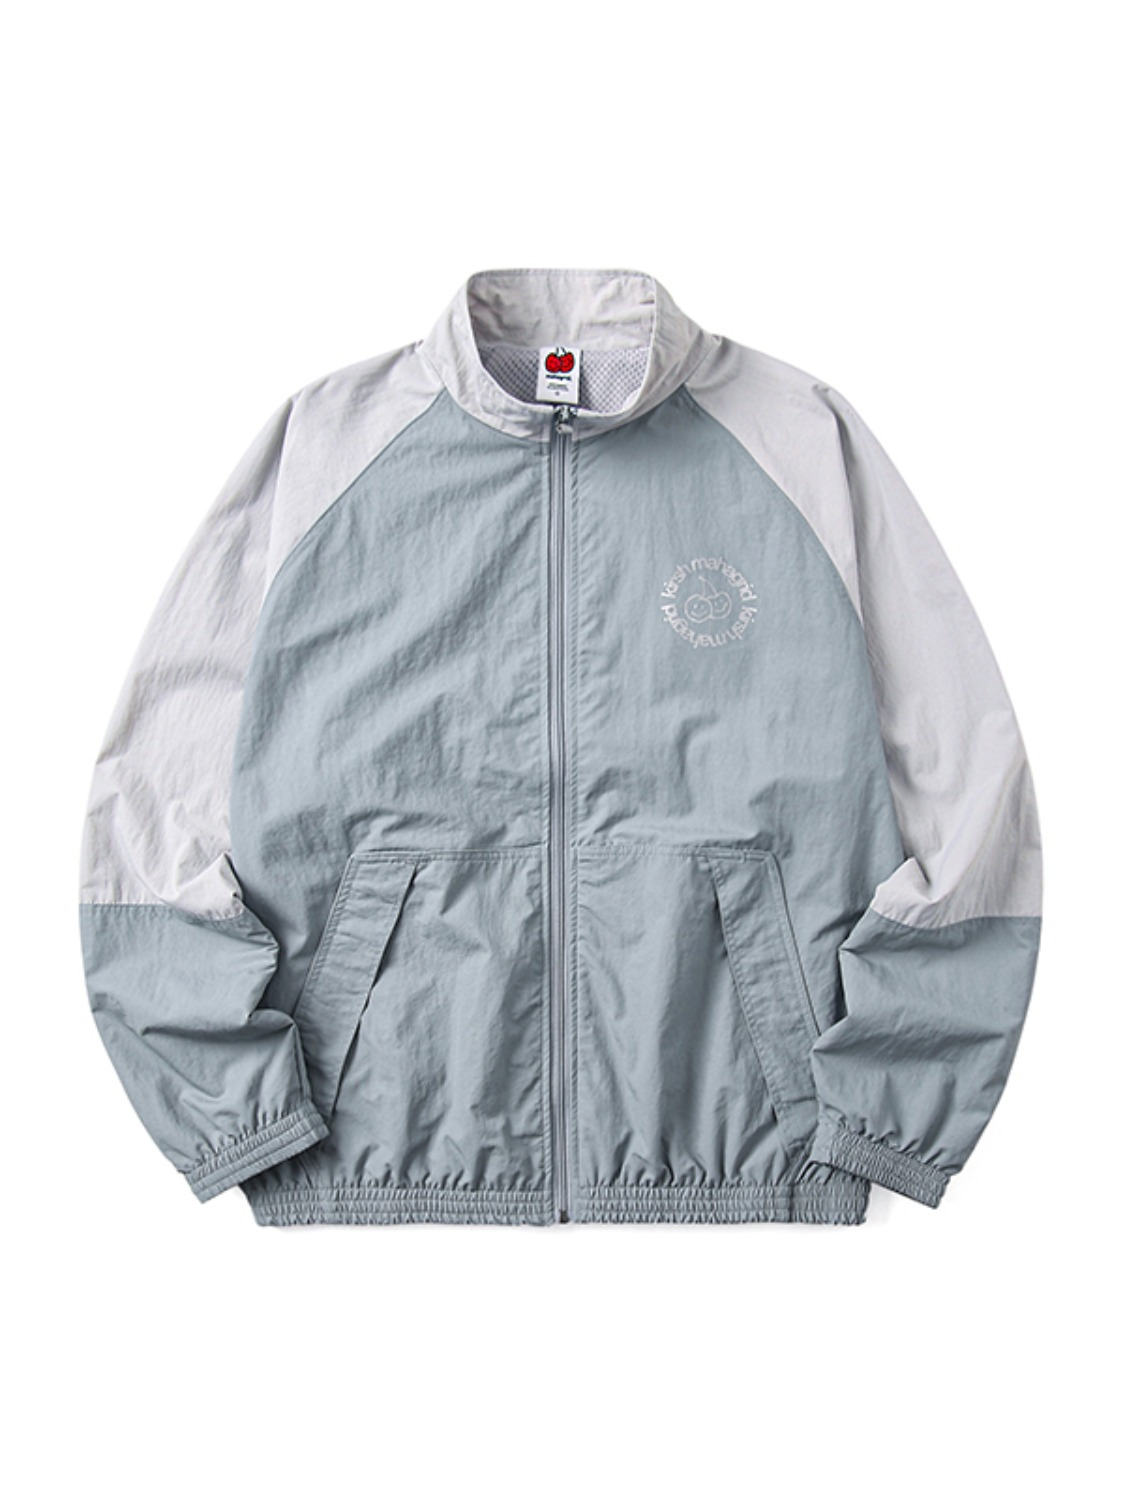 KIRSH X MAHAGRID TRACK JACKET [BLUE]